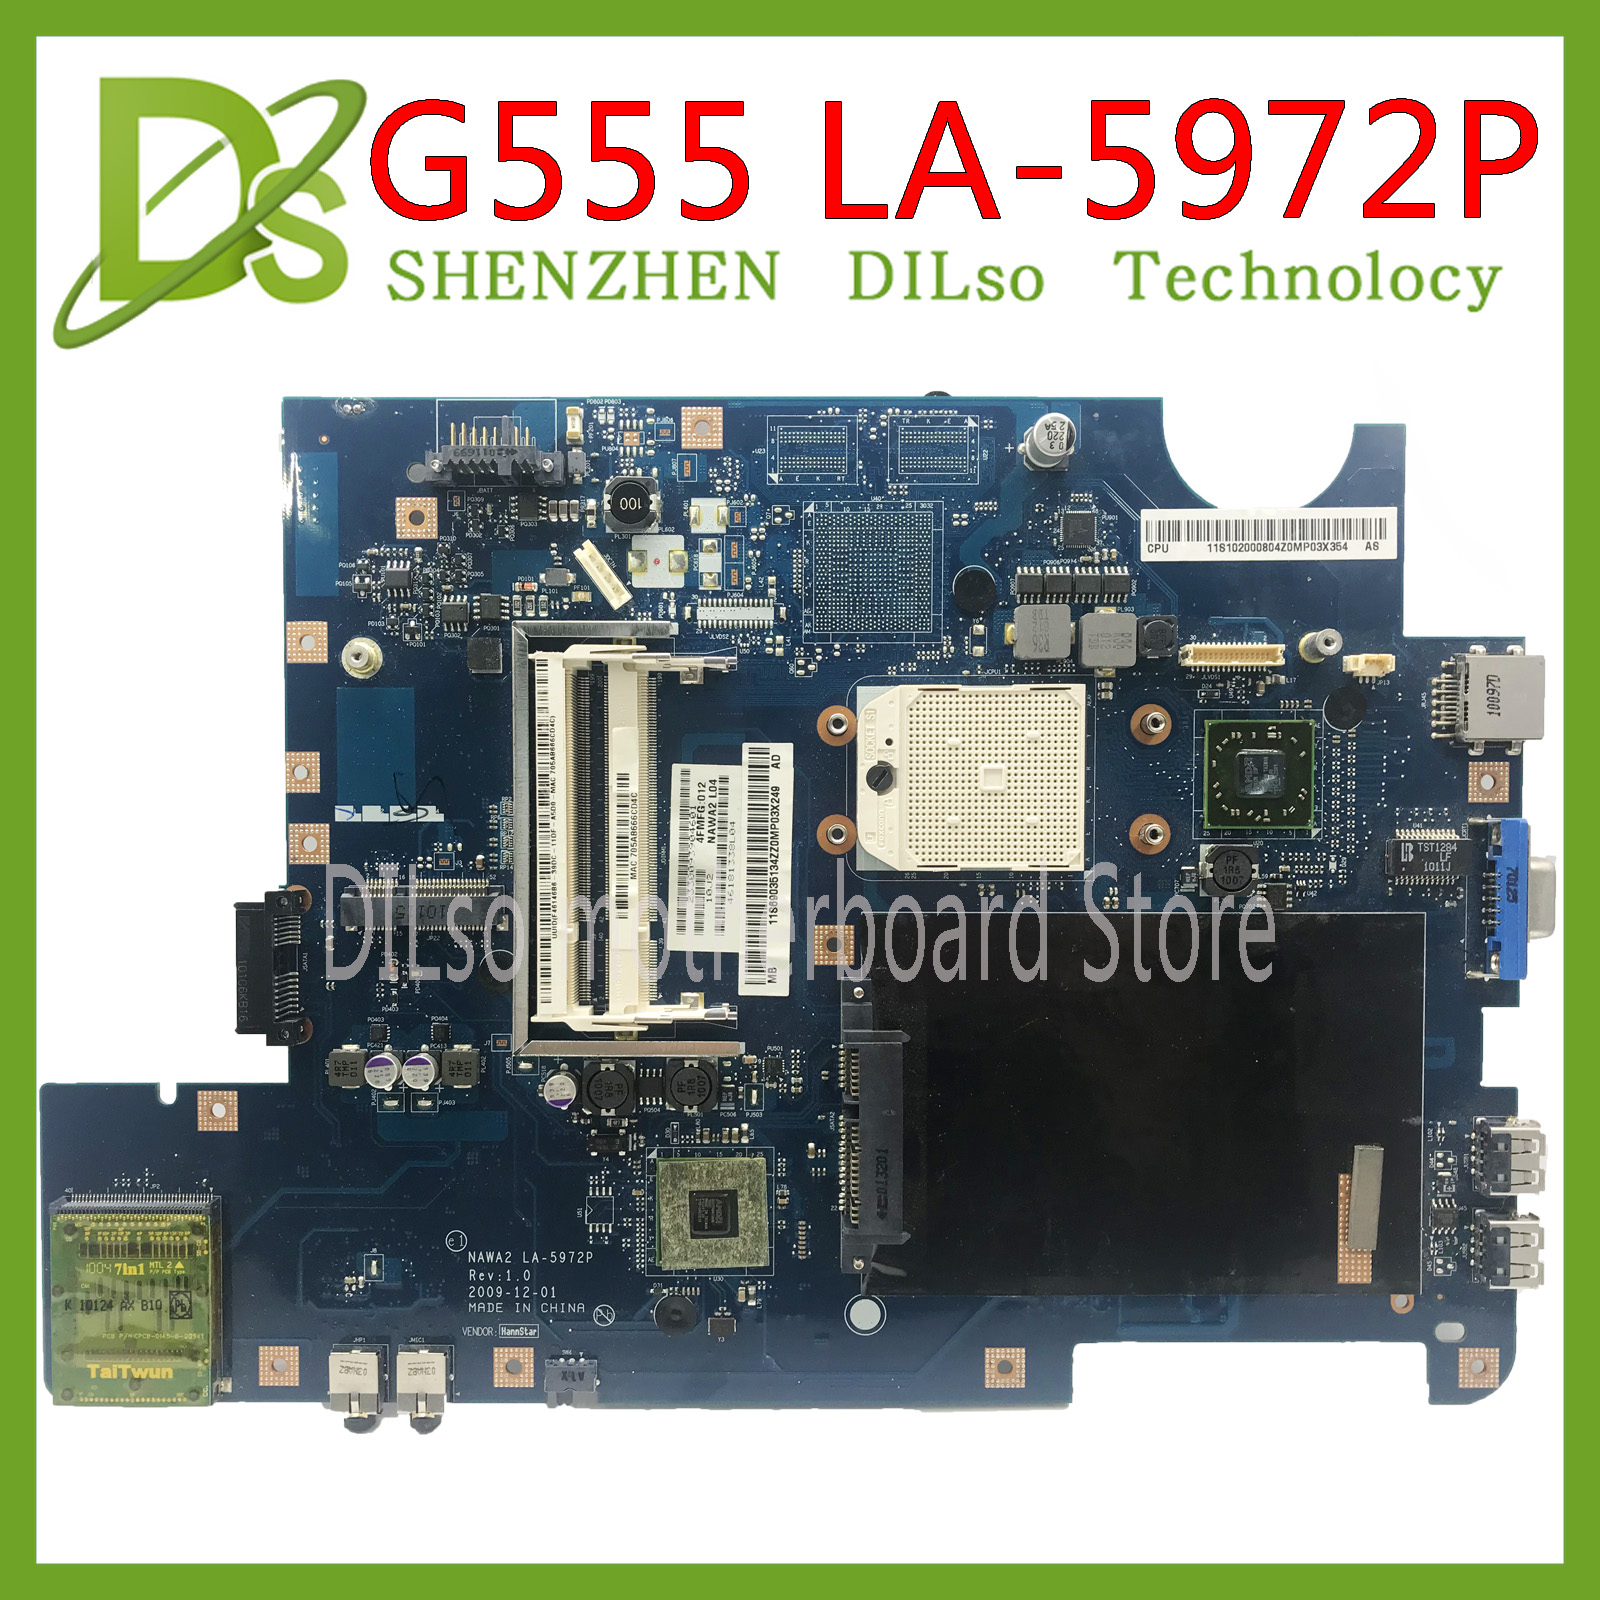 KEFU NAWA2 LA-5972P For Lenovo G555 Notebook G555 Laptop Motherboard NAWA2 LA-5972P Mainboard DDR2 Test Original Mothebroard